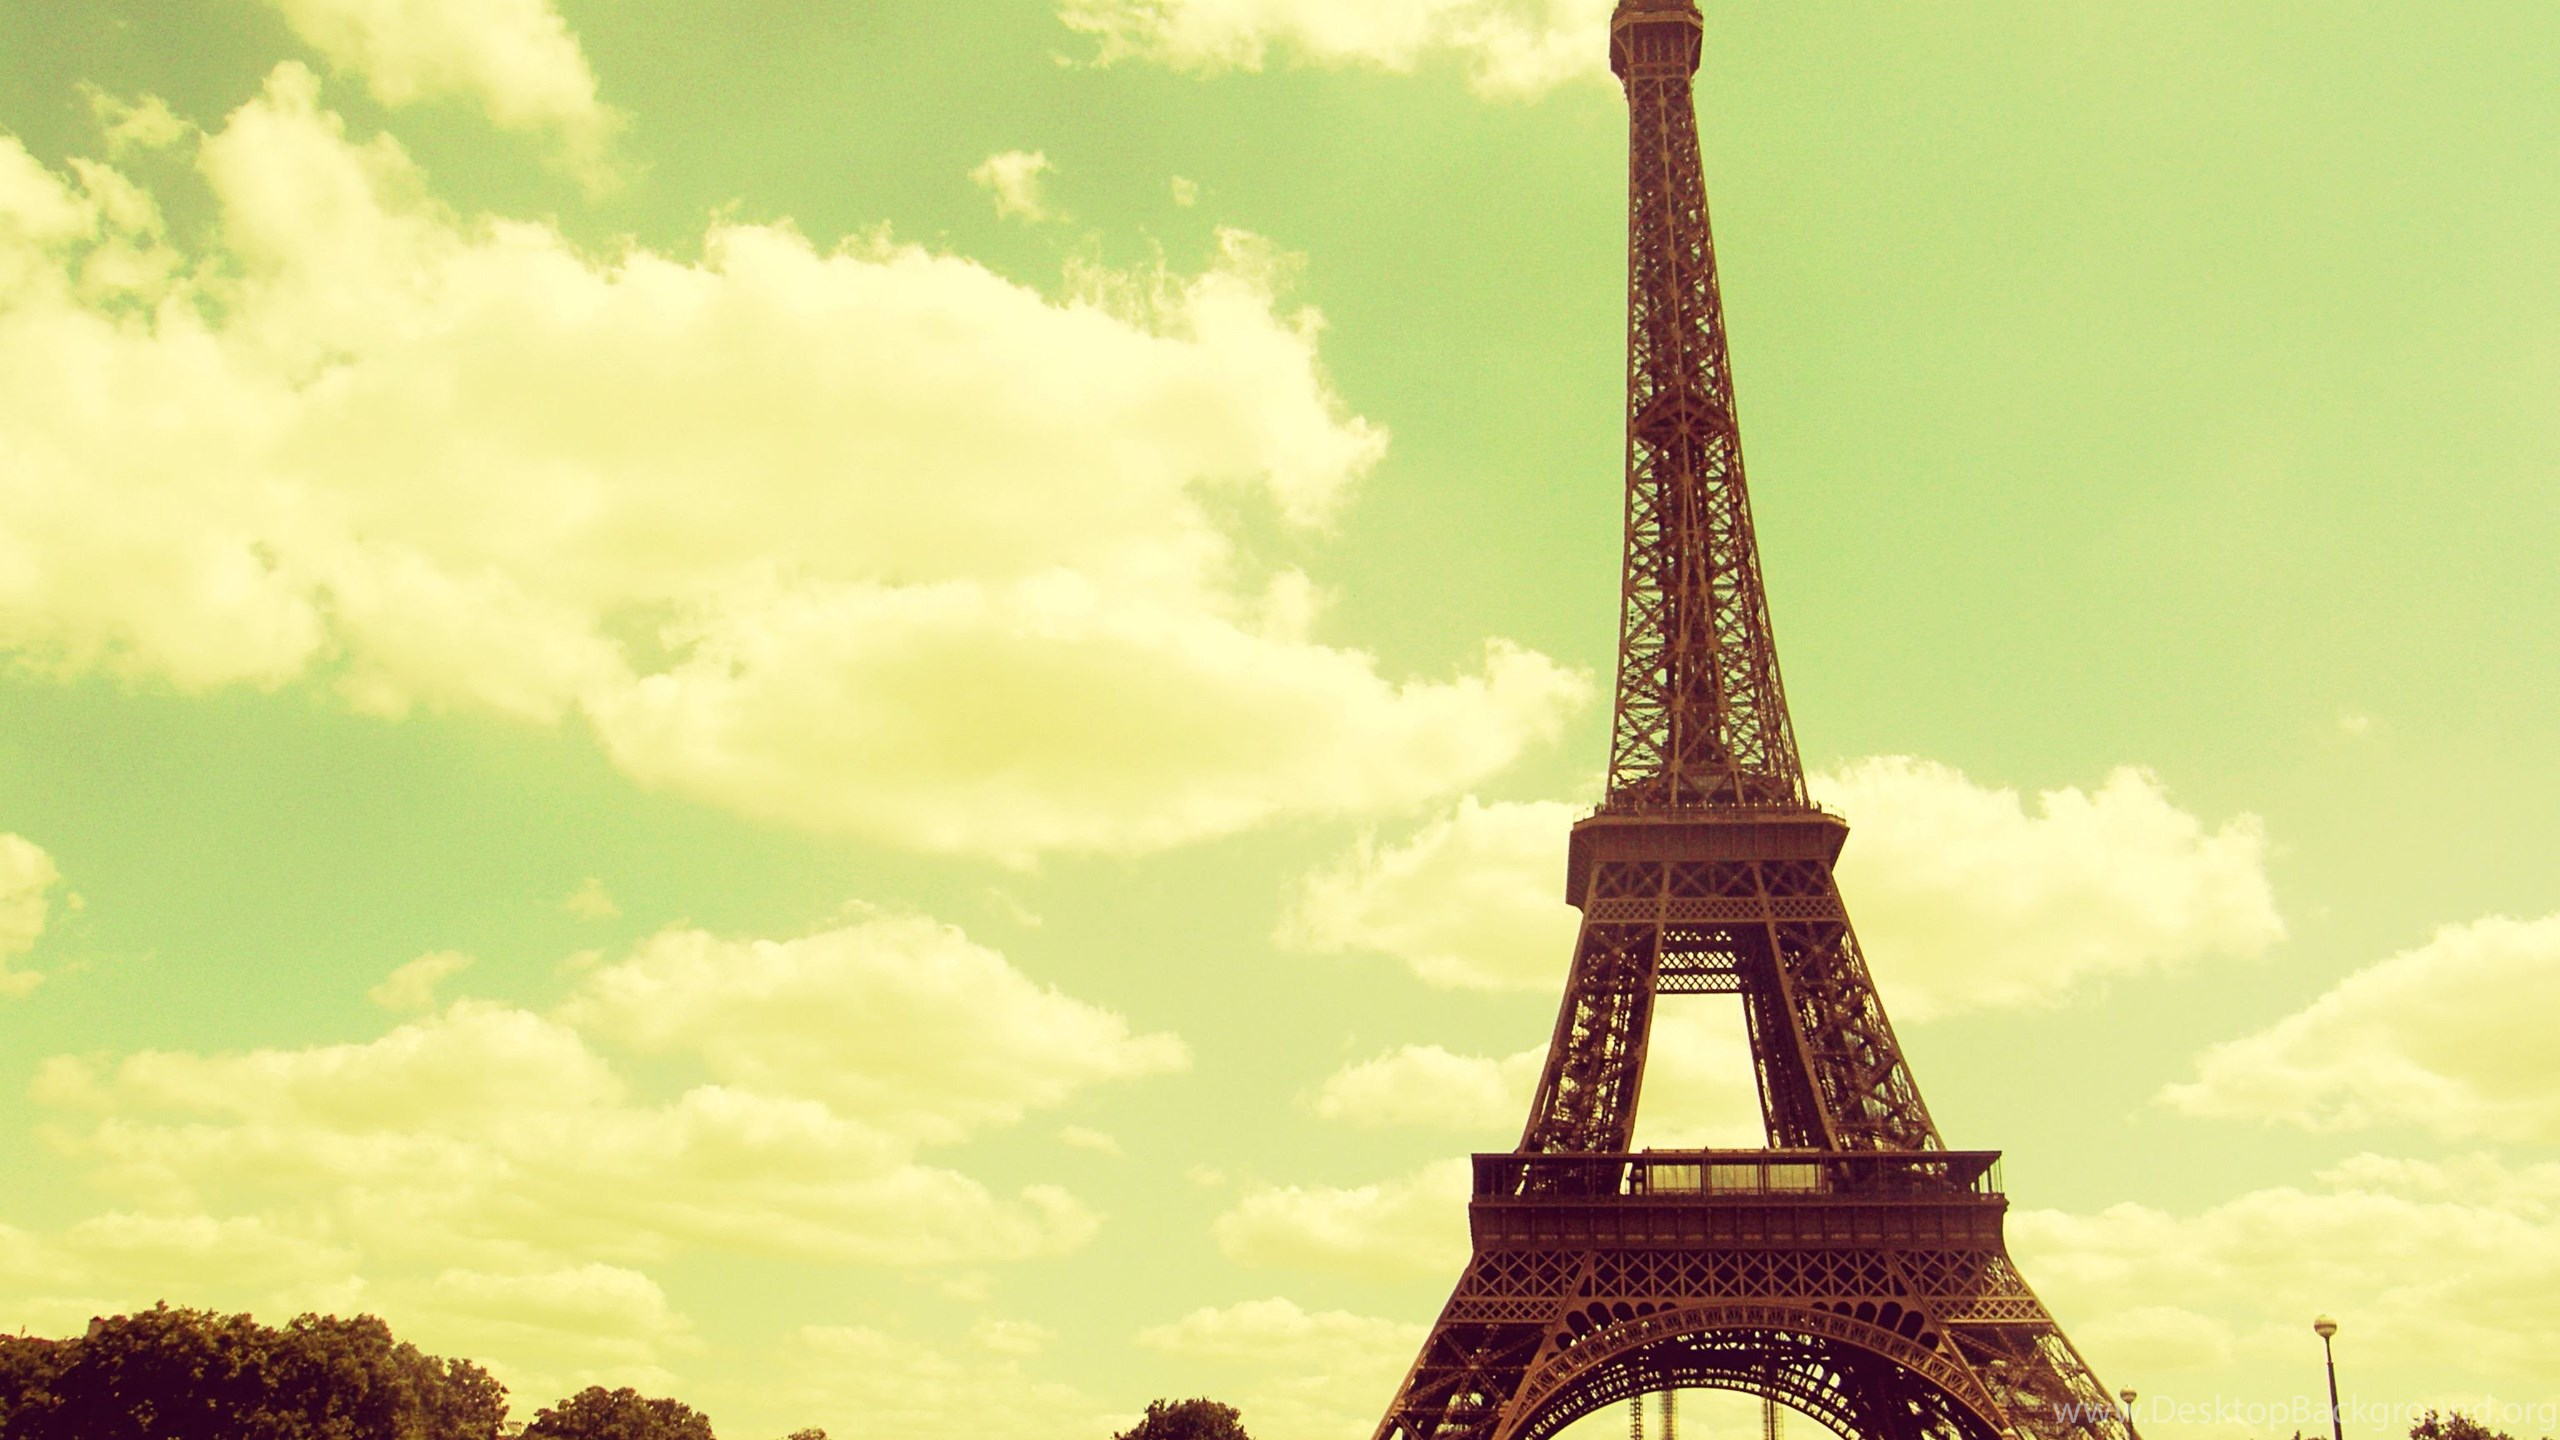 Beautiful Eiffel Tower Wallpapers And Images Wallpapers Desktop